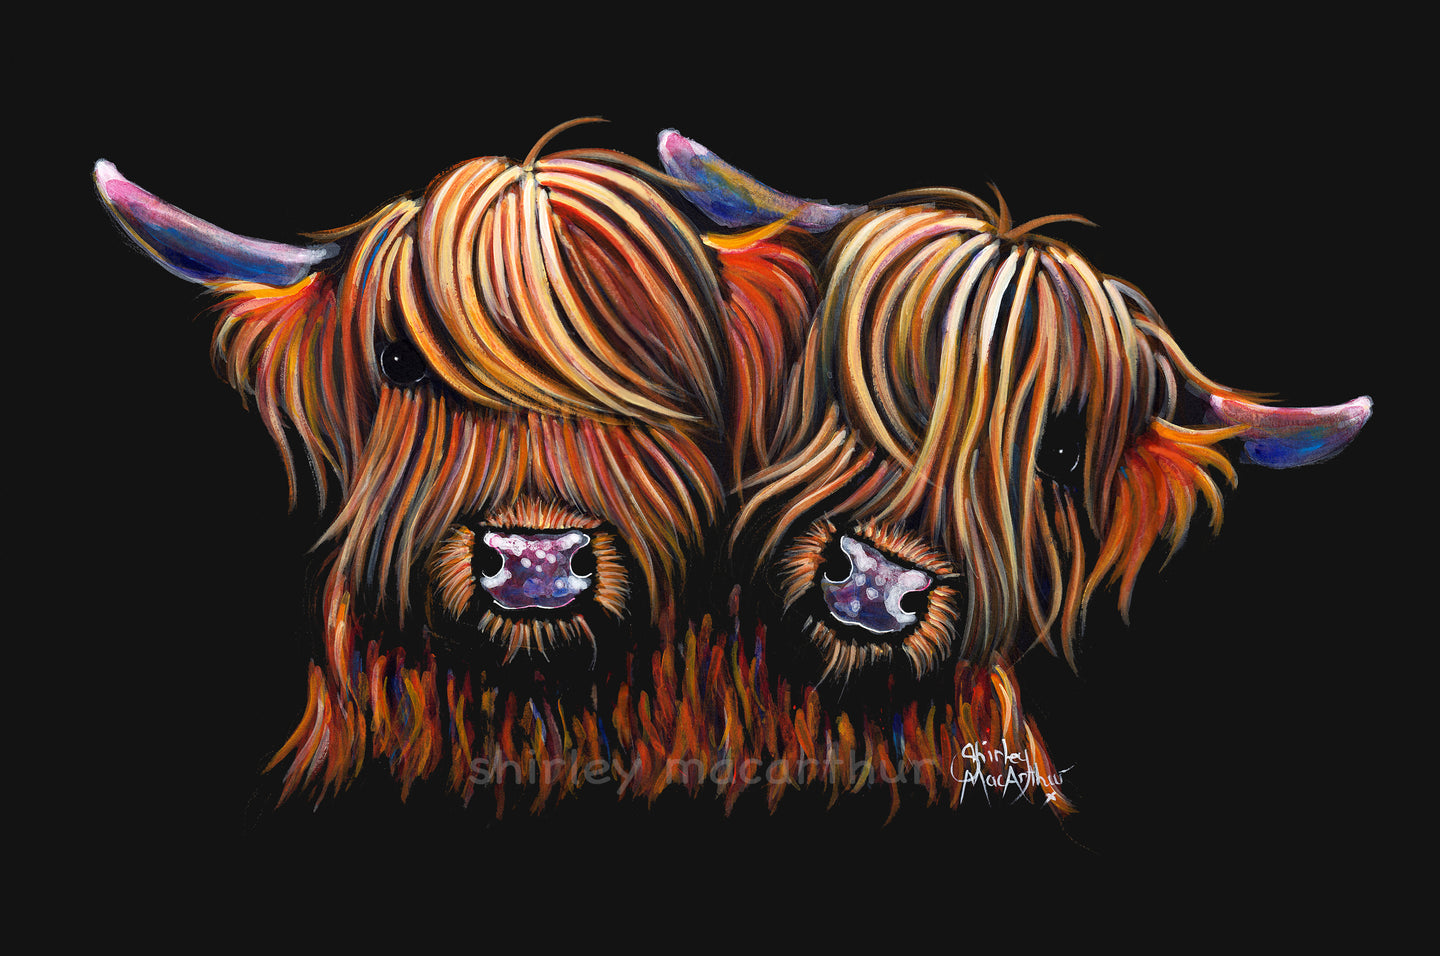 'PaLS'  HiGHLaND CoW PRiNT, WaLL ART - BY SHiRLeY MacARTHuR